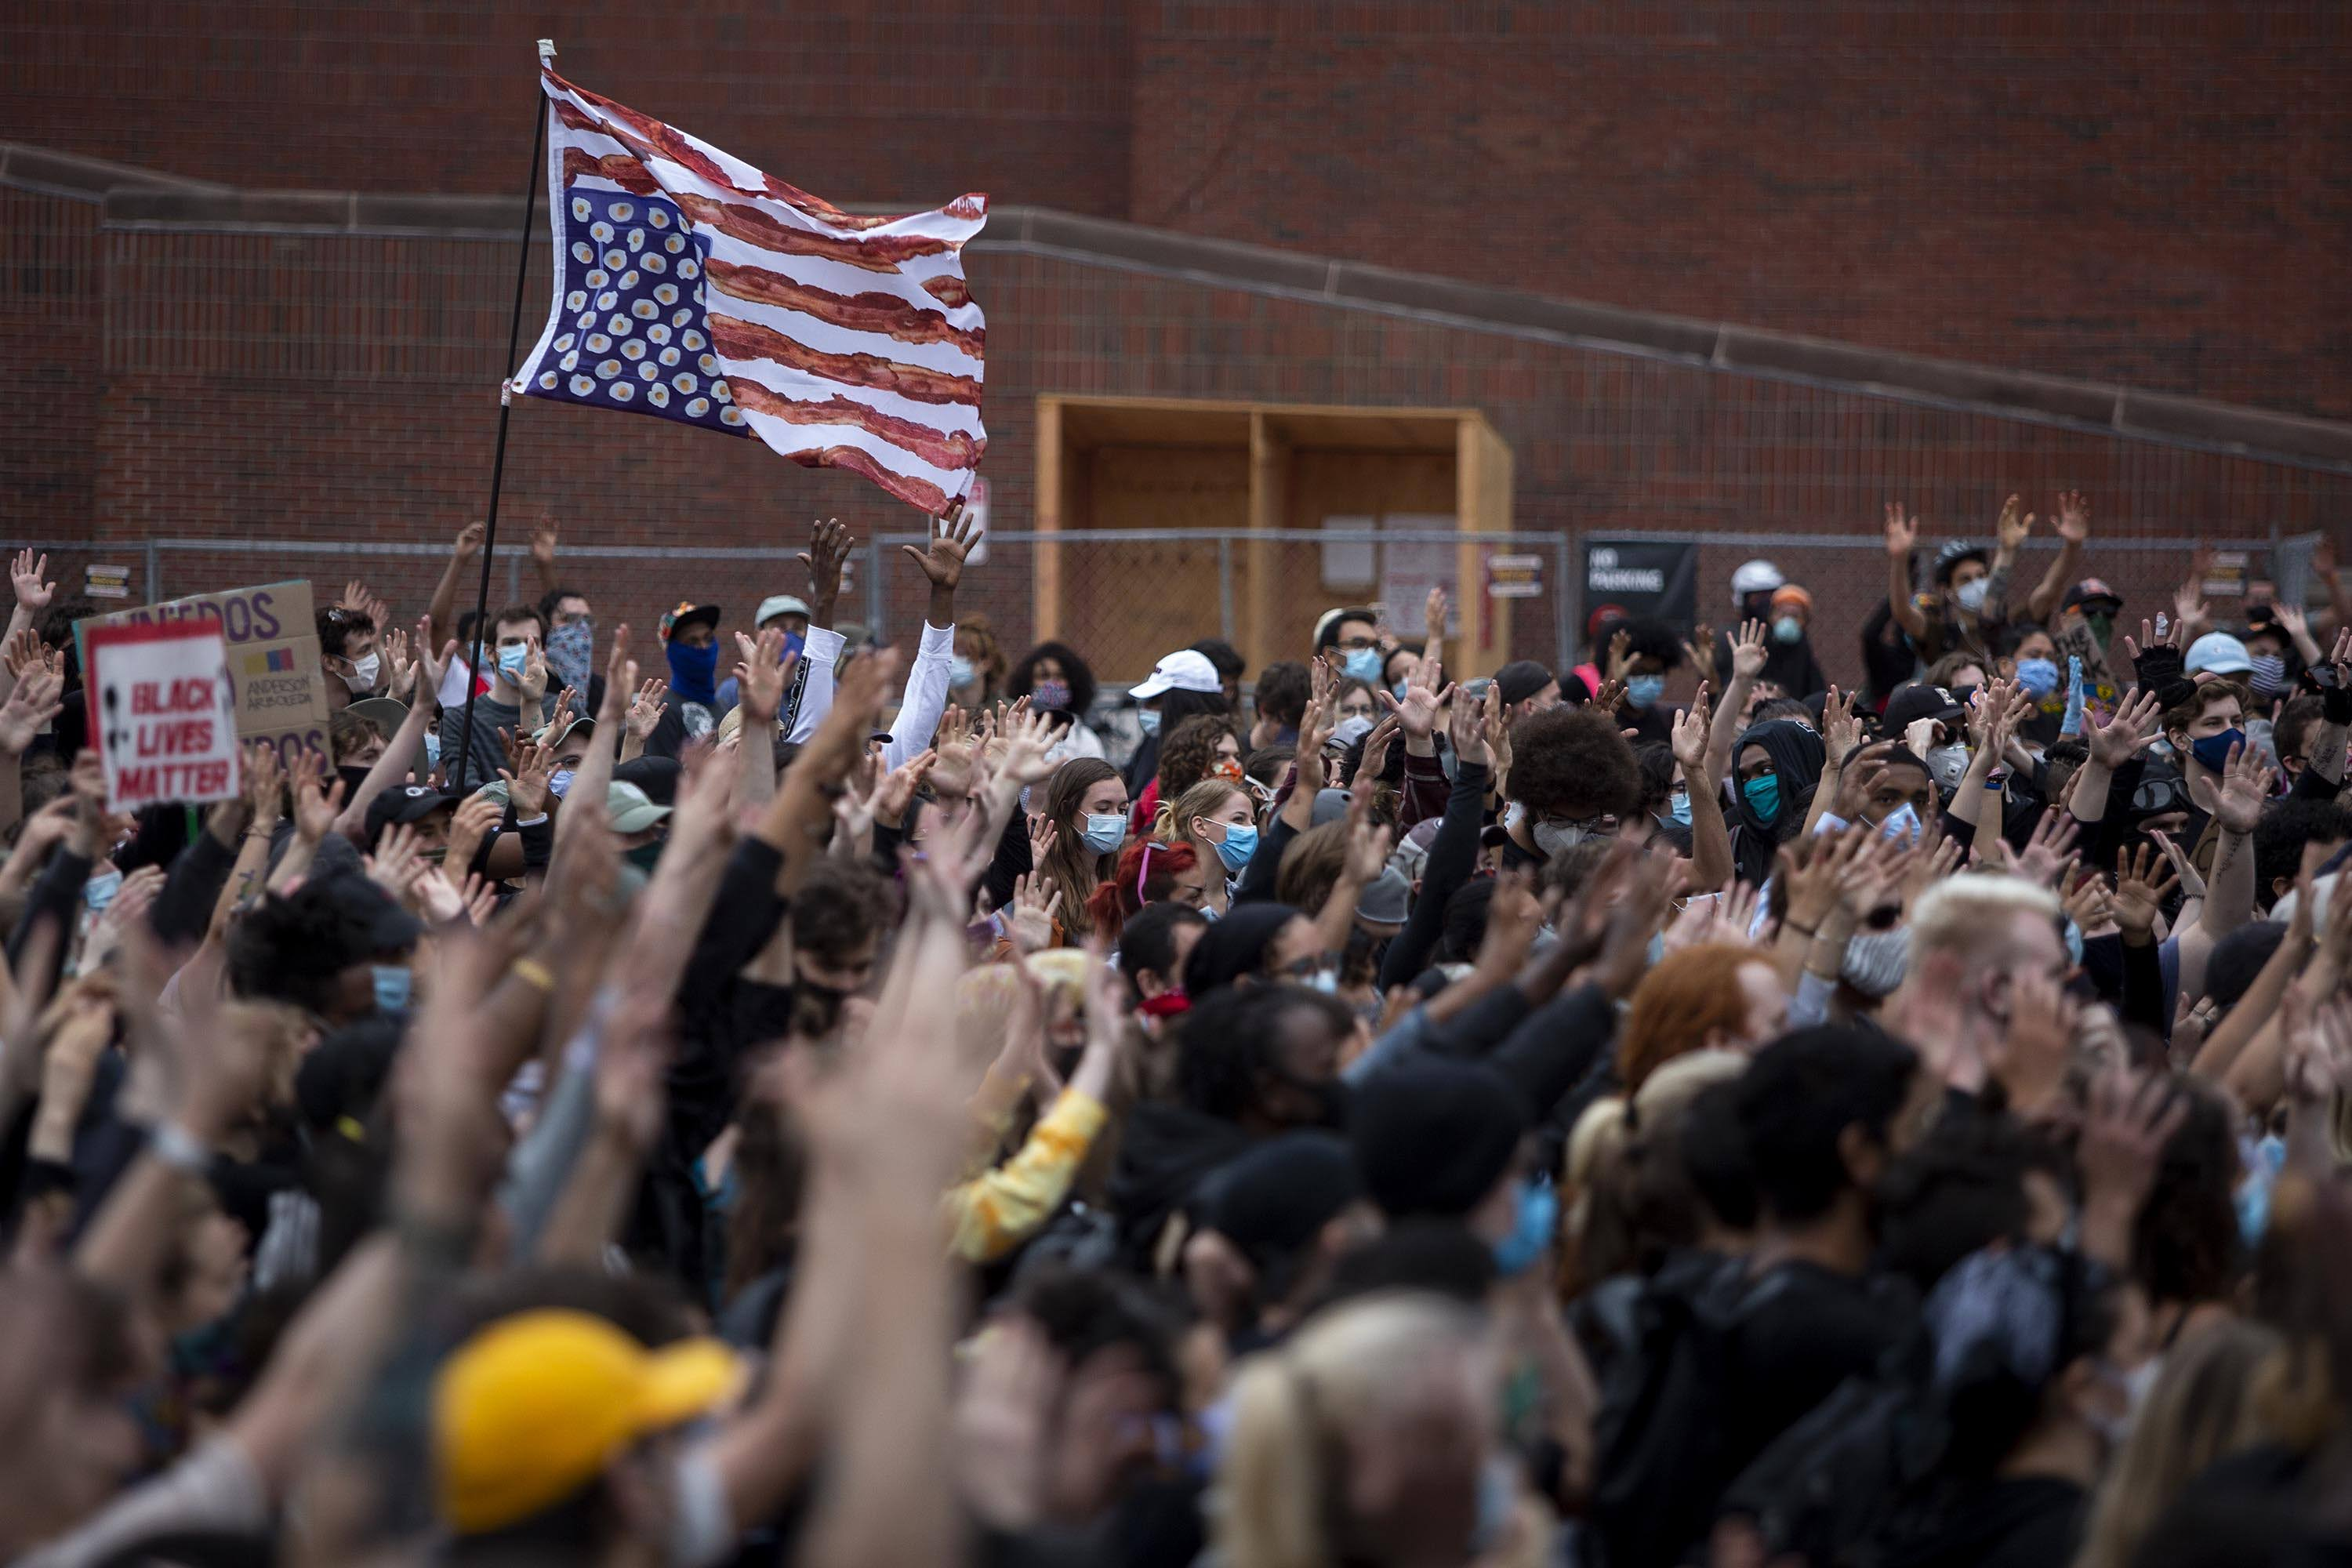 Protesters at the For The People march raise their hands in unison in City Hall Plaza. (Robin Lubbock/WBUR)